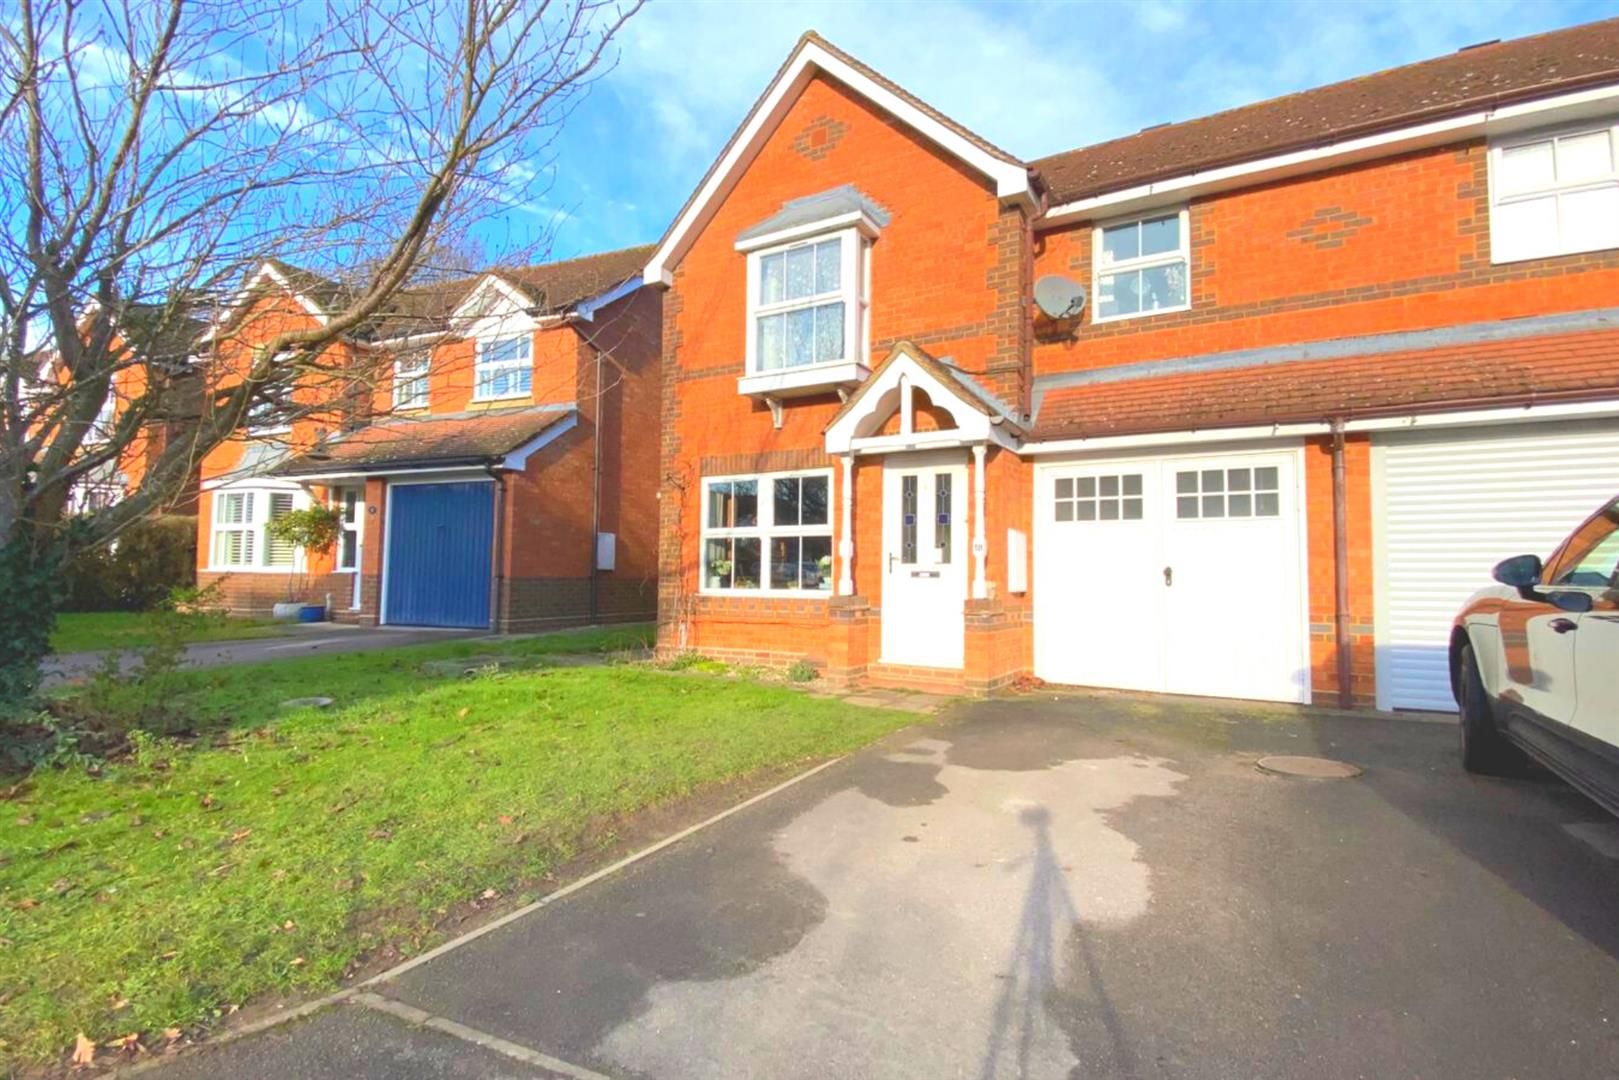 3 bed semi-detached for sale in Woodley, RG5